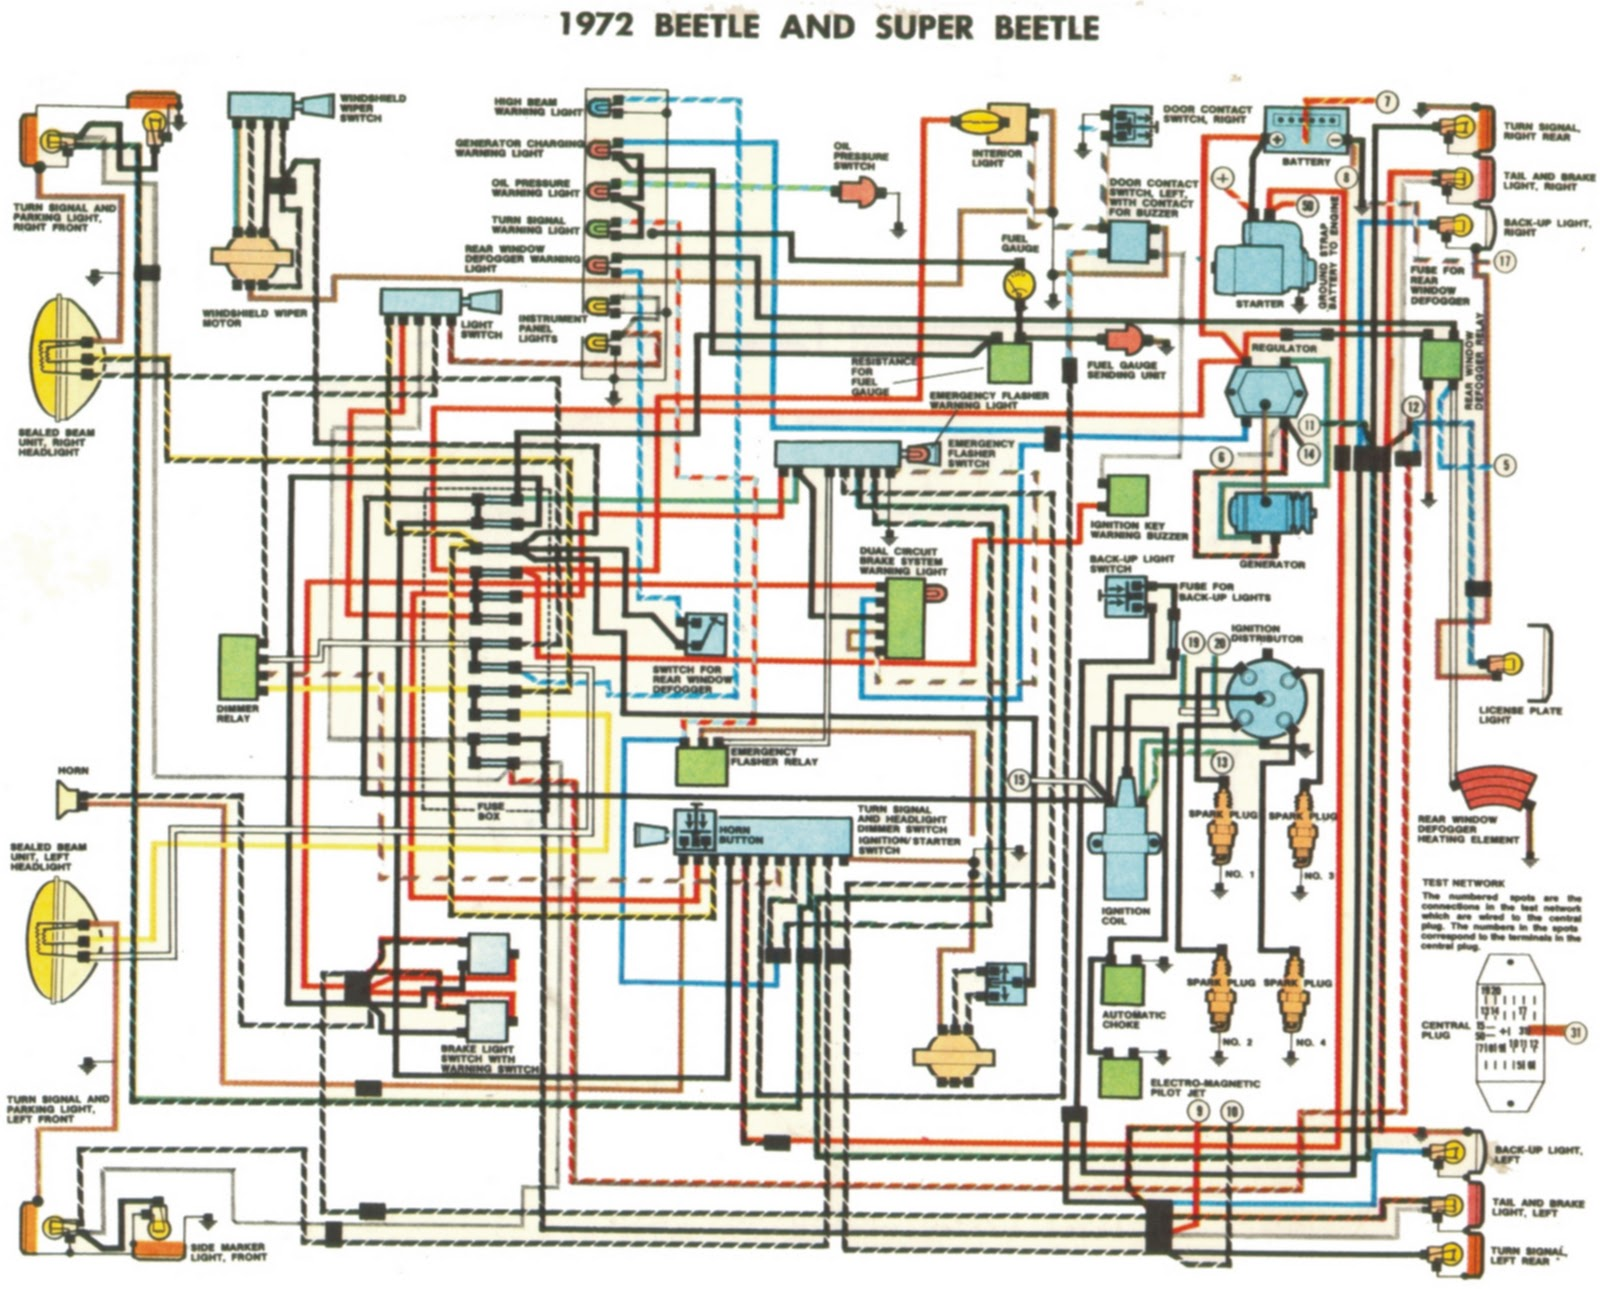 1972 vw beetle wiring diagram 1972 wiring diagrams online 1972 beetle and super beetle wiring diagrams